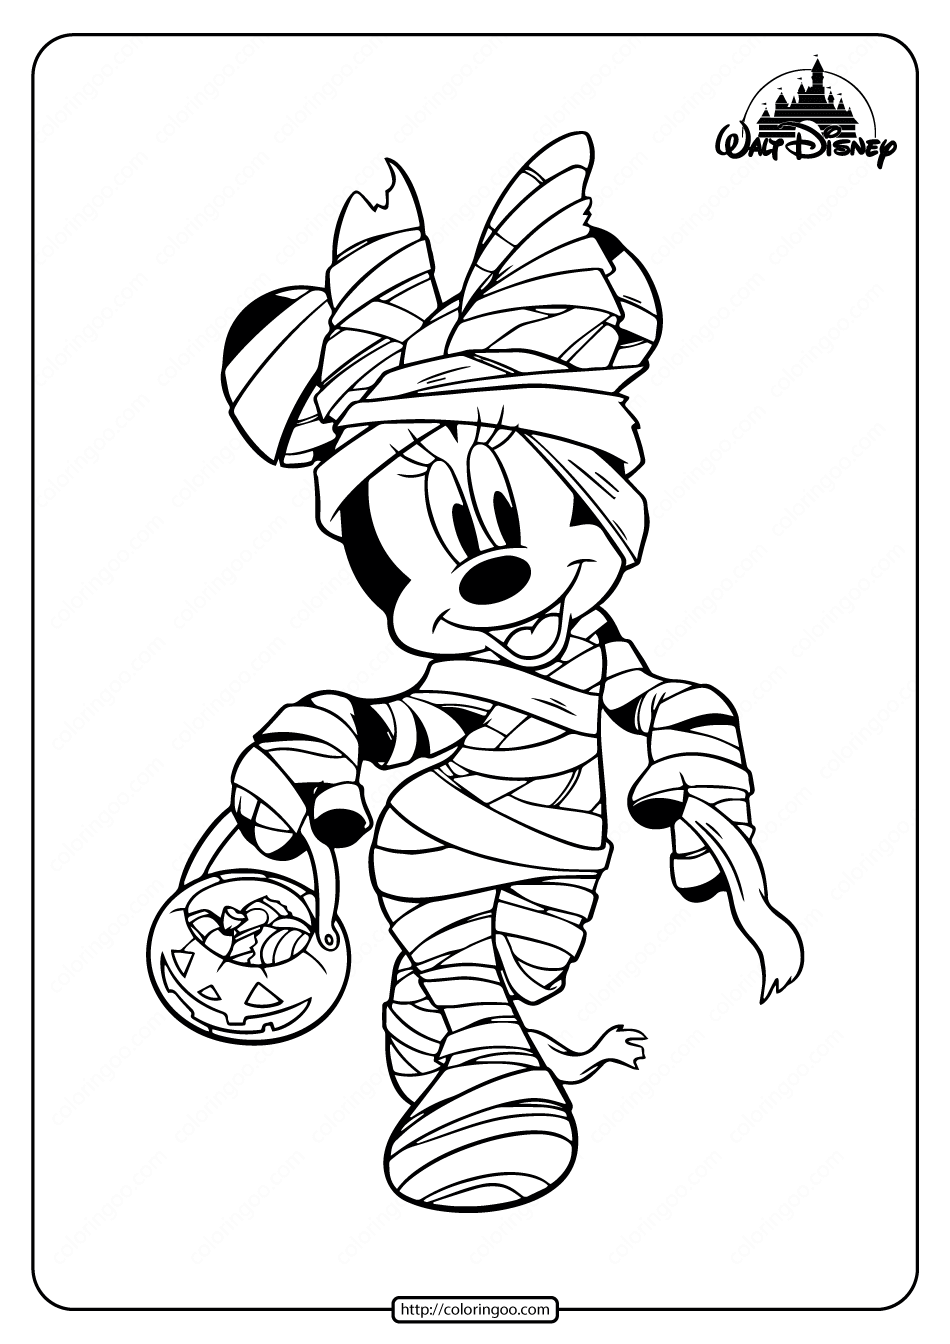 Printables Minnie Mouse Halloween Coloring Pages